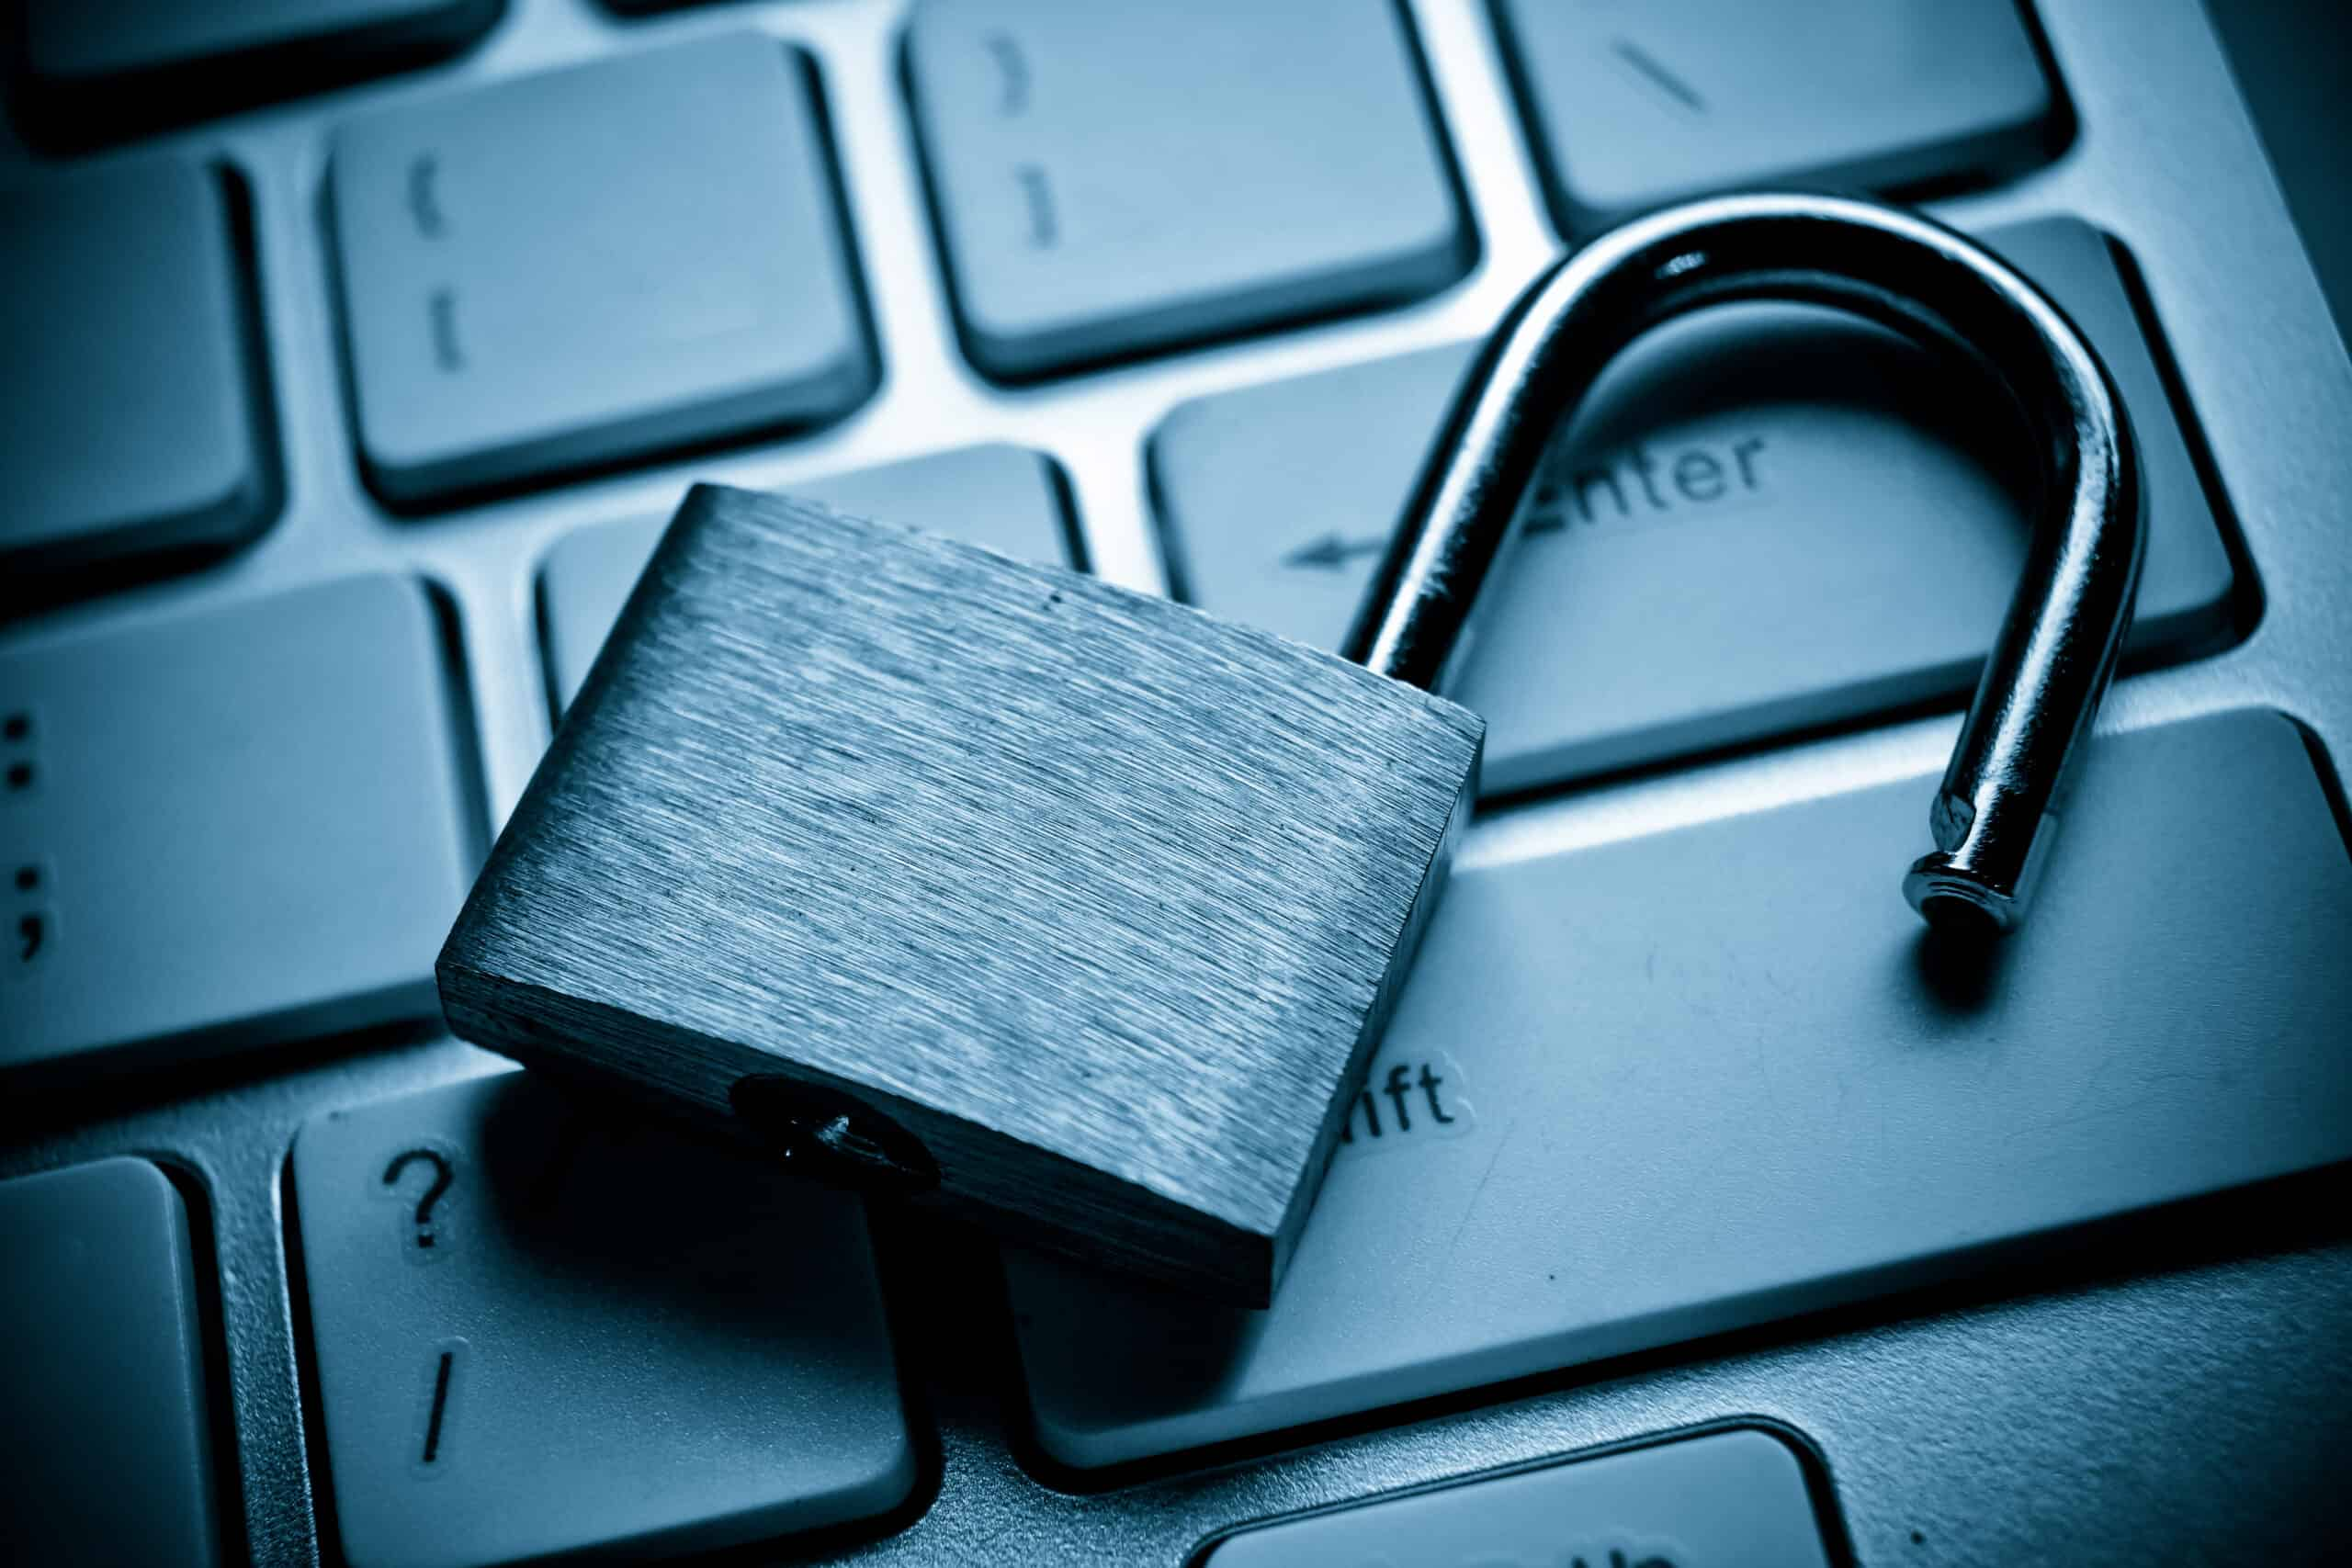 a close up of a padlock sitting on top of a laptop keyboard